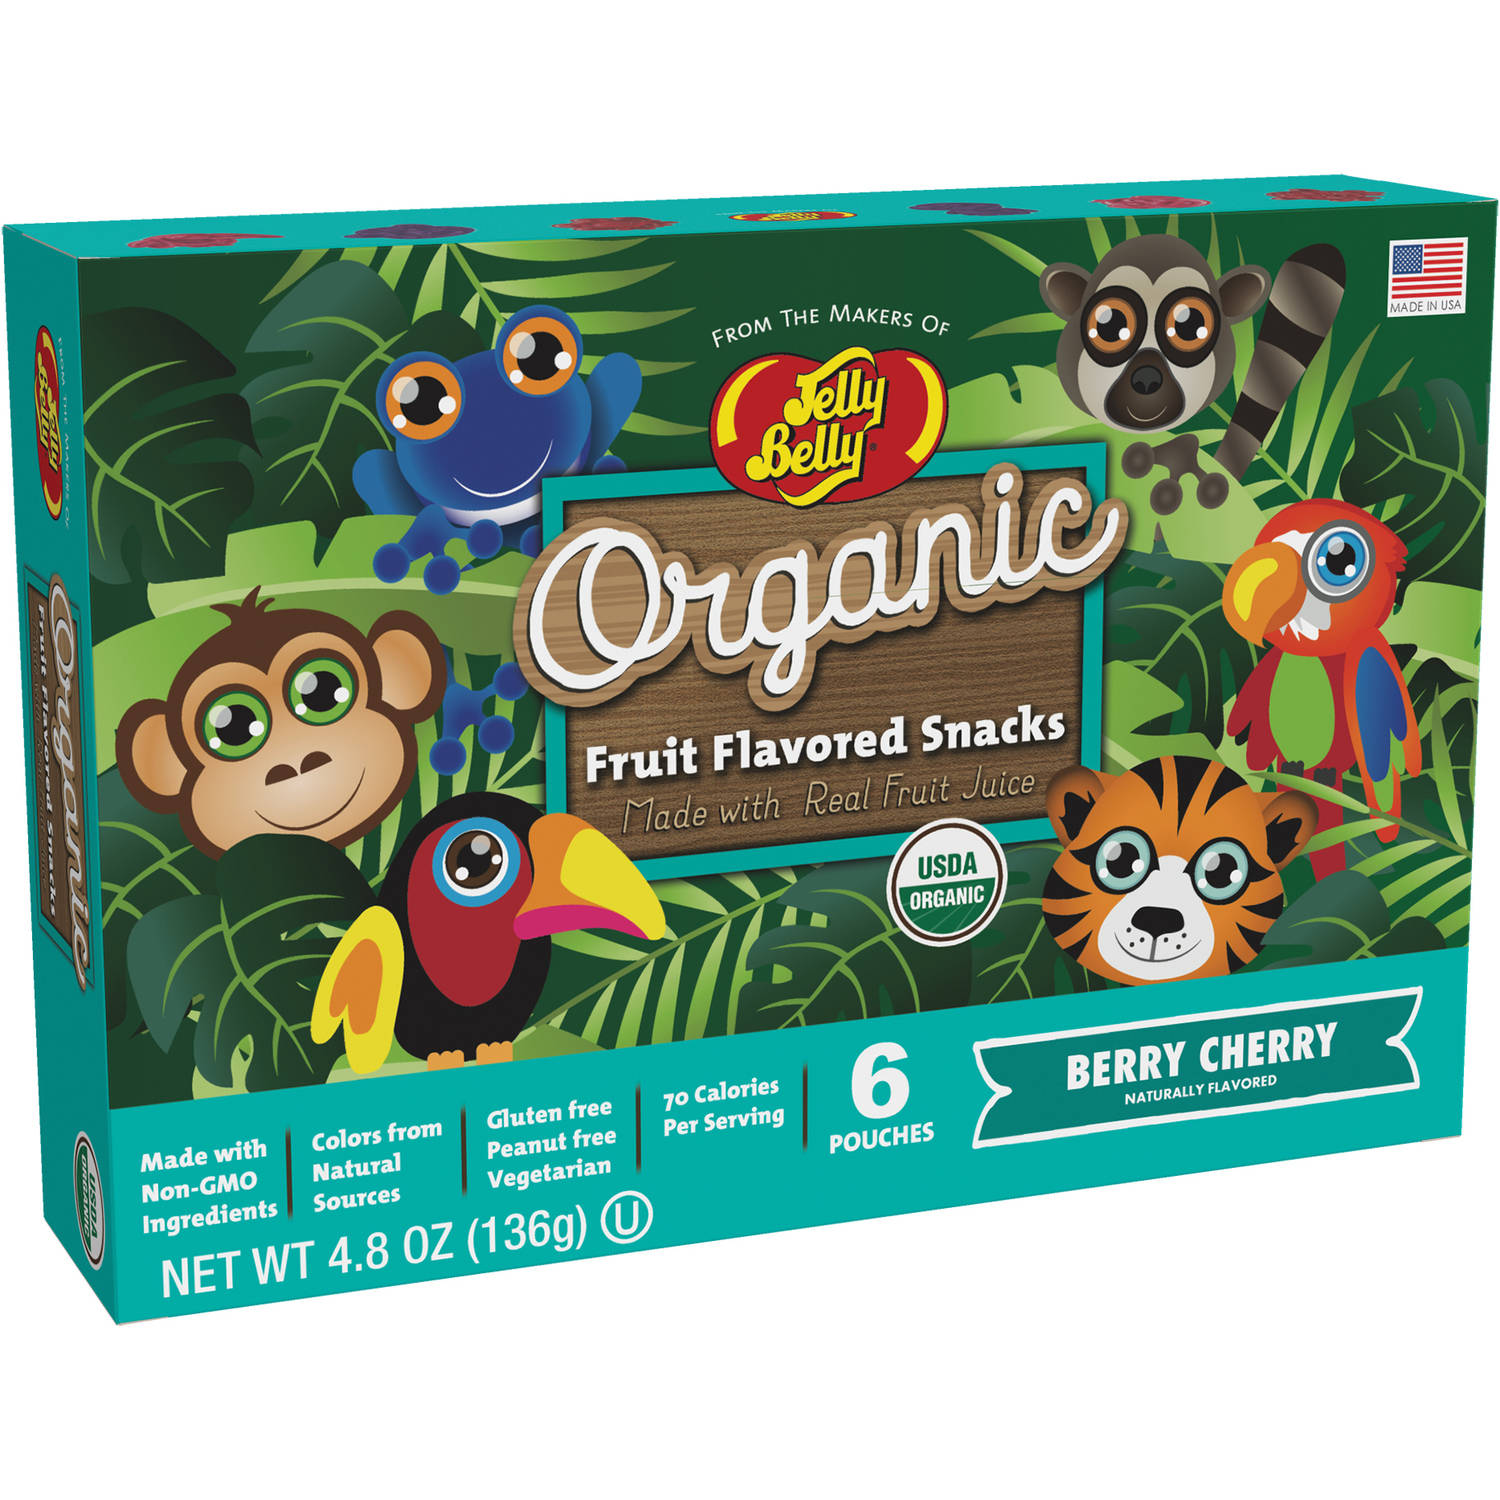 JELLY BELLY ORGANIC FRUIT SNACKS RAINFOREST ANIMALS BERRY CHERRY POUCHES 4.8 oz. BOX